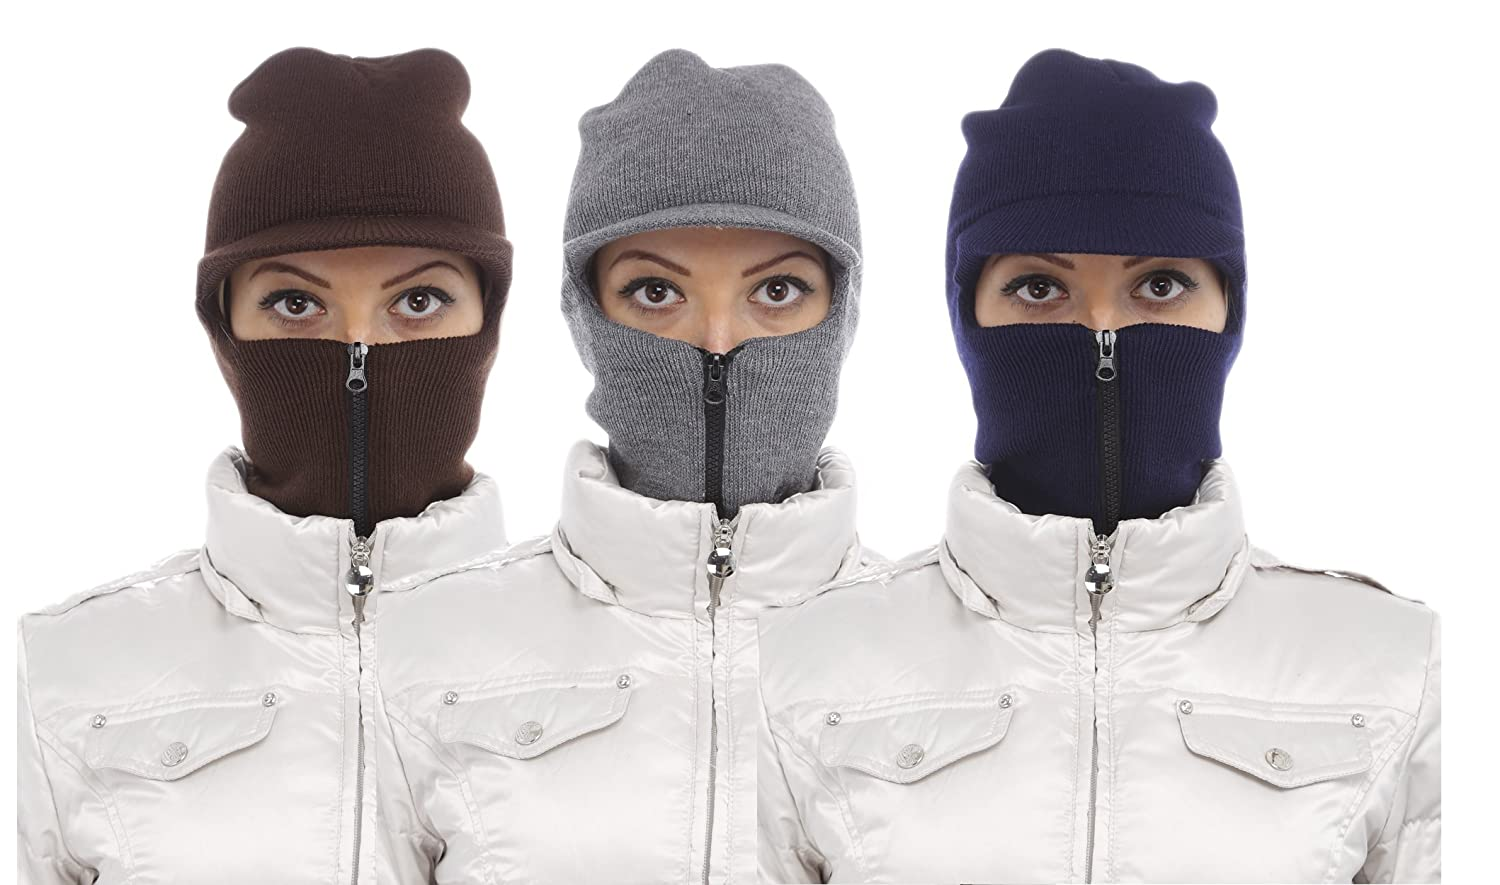 Amazon.com: Ski and Snowboard Face Mask with Visor - Wind and Cold Protection for Winter Outdoors (3 Ski Masks Color Whit Front Zipper): Clothing